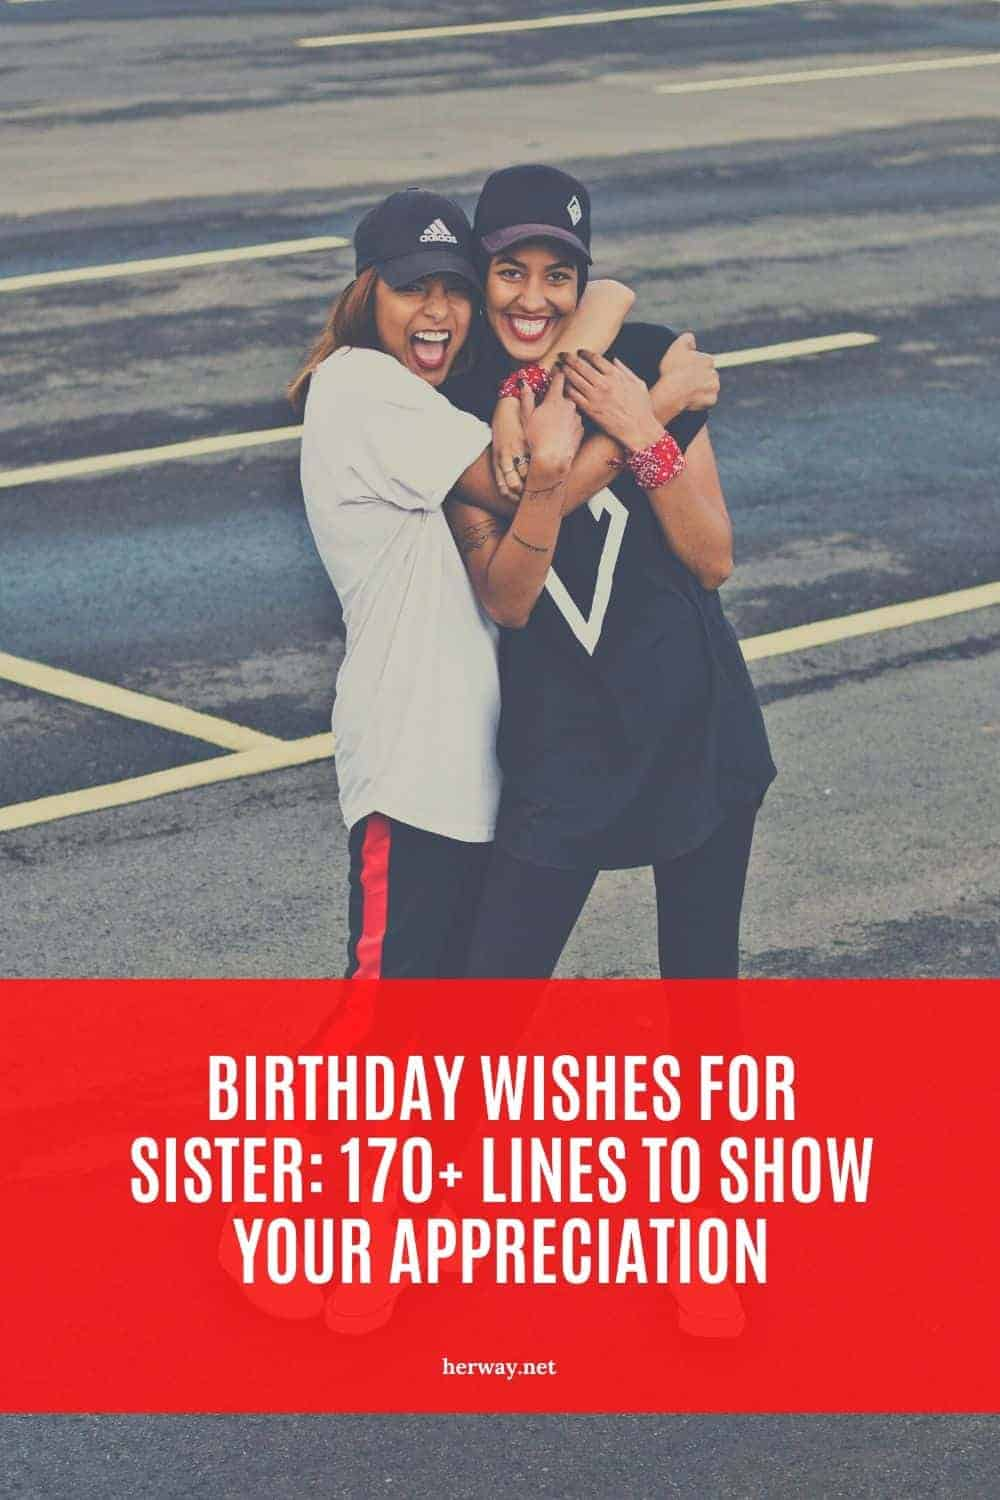 Birthday Wishes For Sister 170+ Lines To Show Your Appreciation